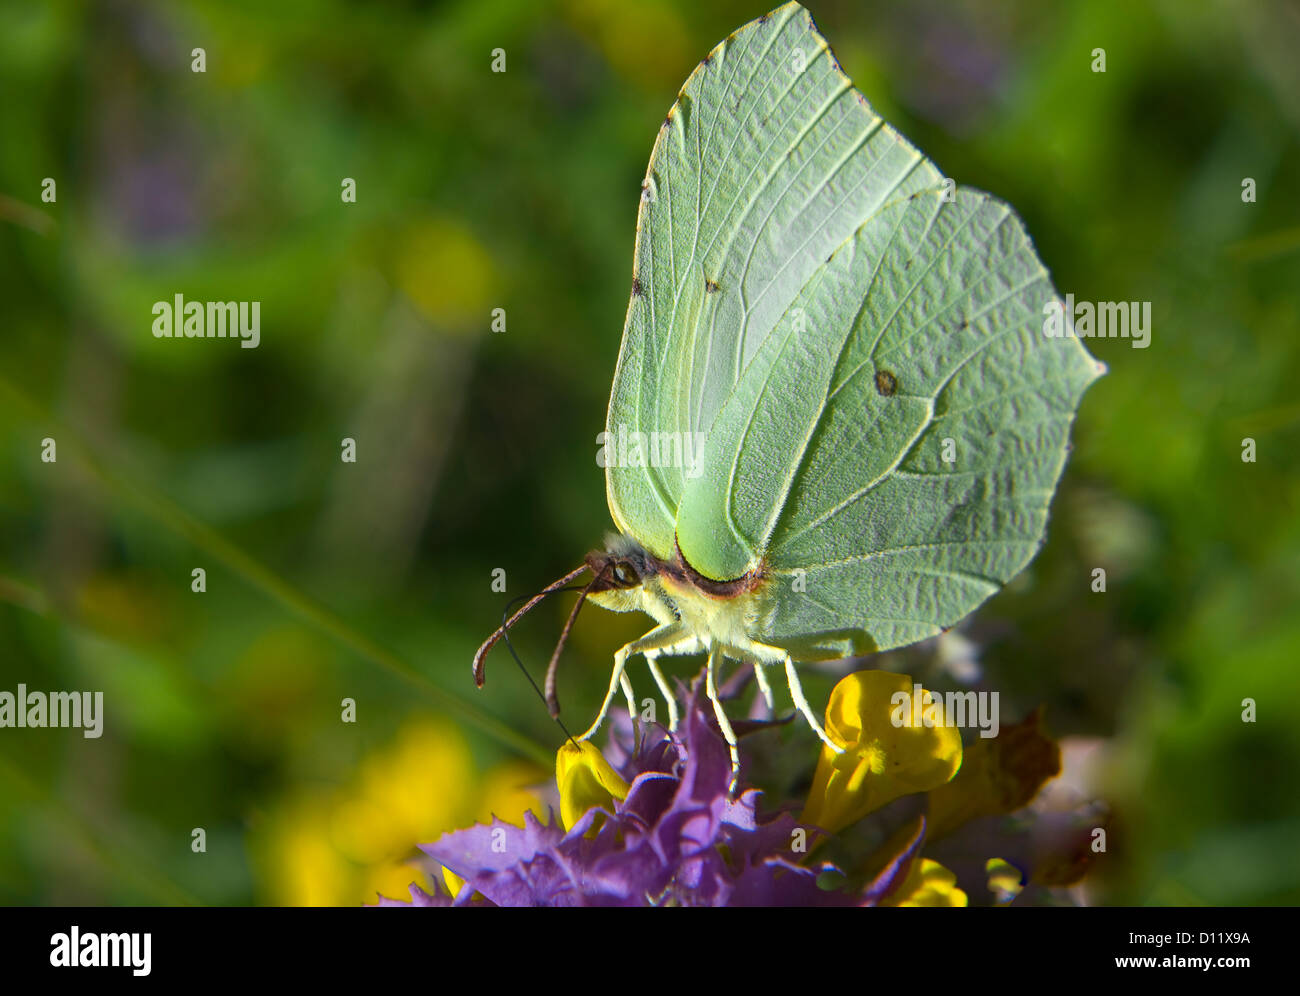 Yellow butterfly feeding on flowers - Stock Image